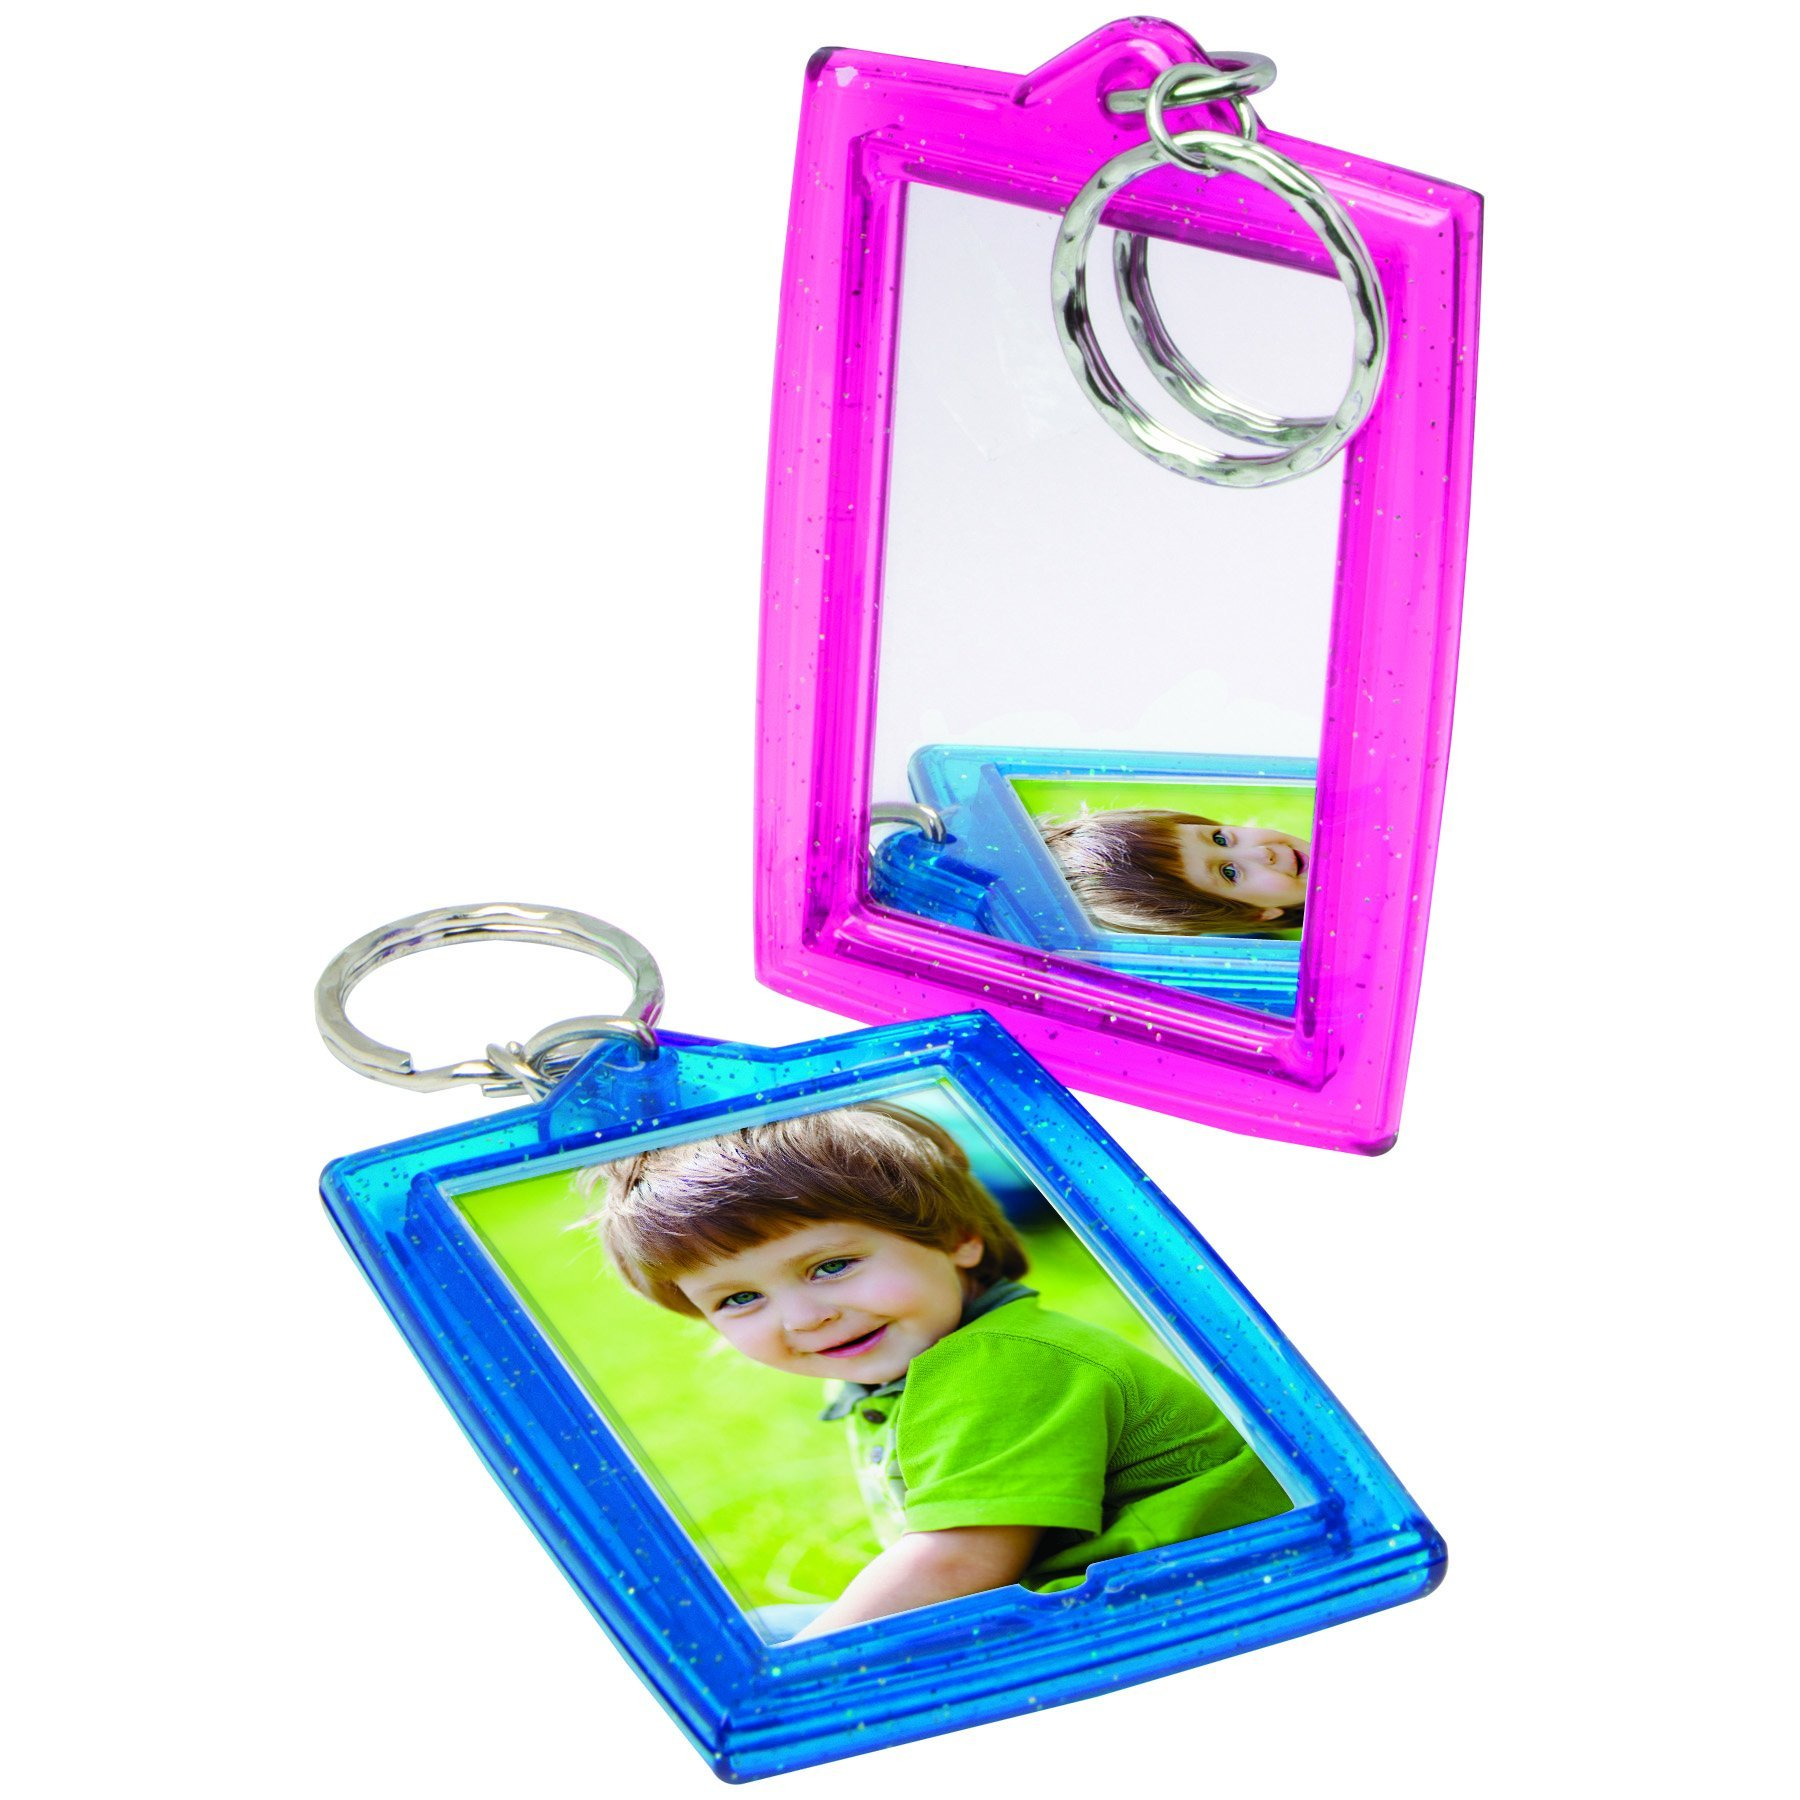 Teal Sparkle 1-3/4'' x 2-3/4'' Photo Keychains with Mirror - Case of 144 by Snapins